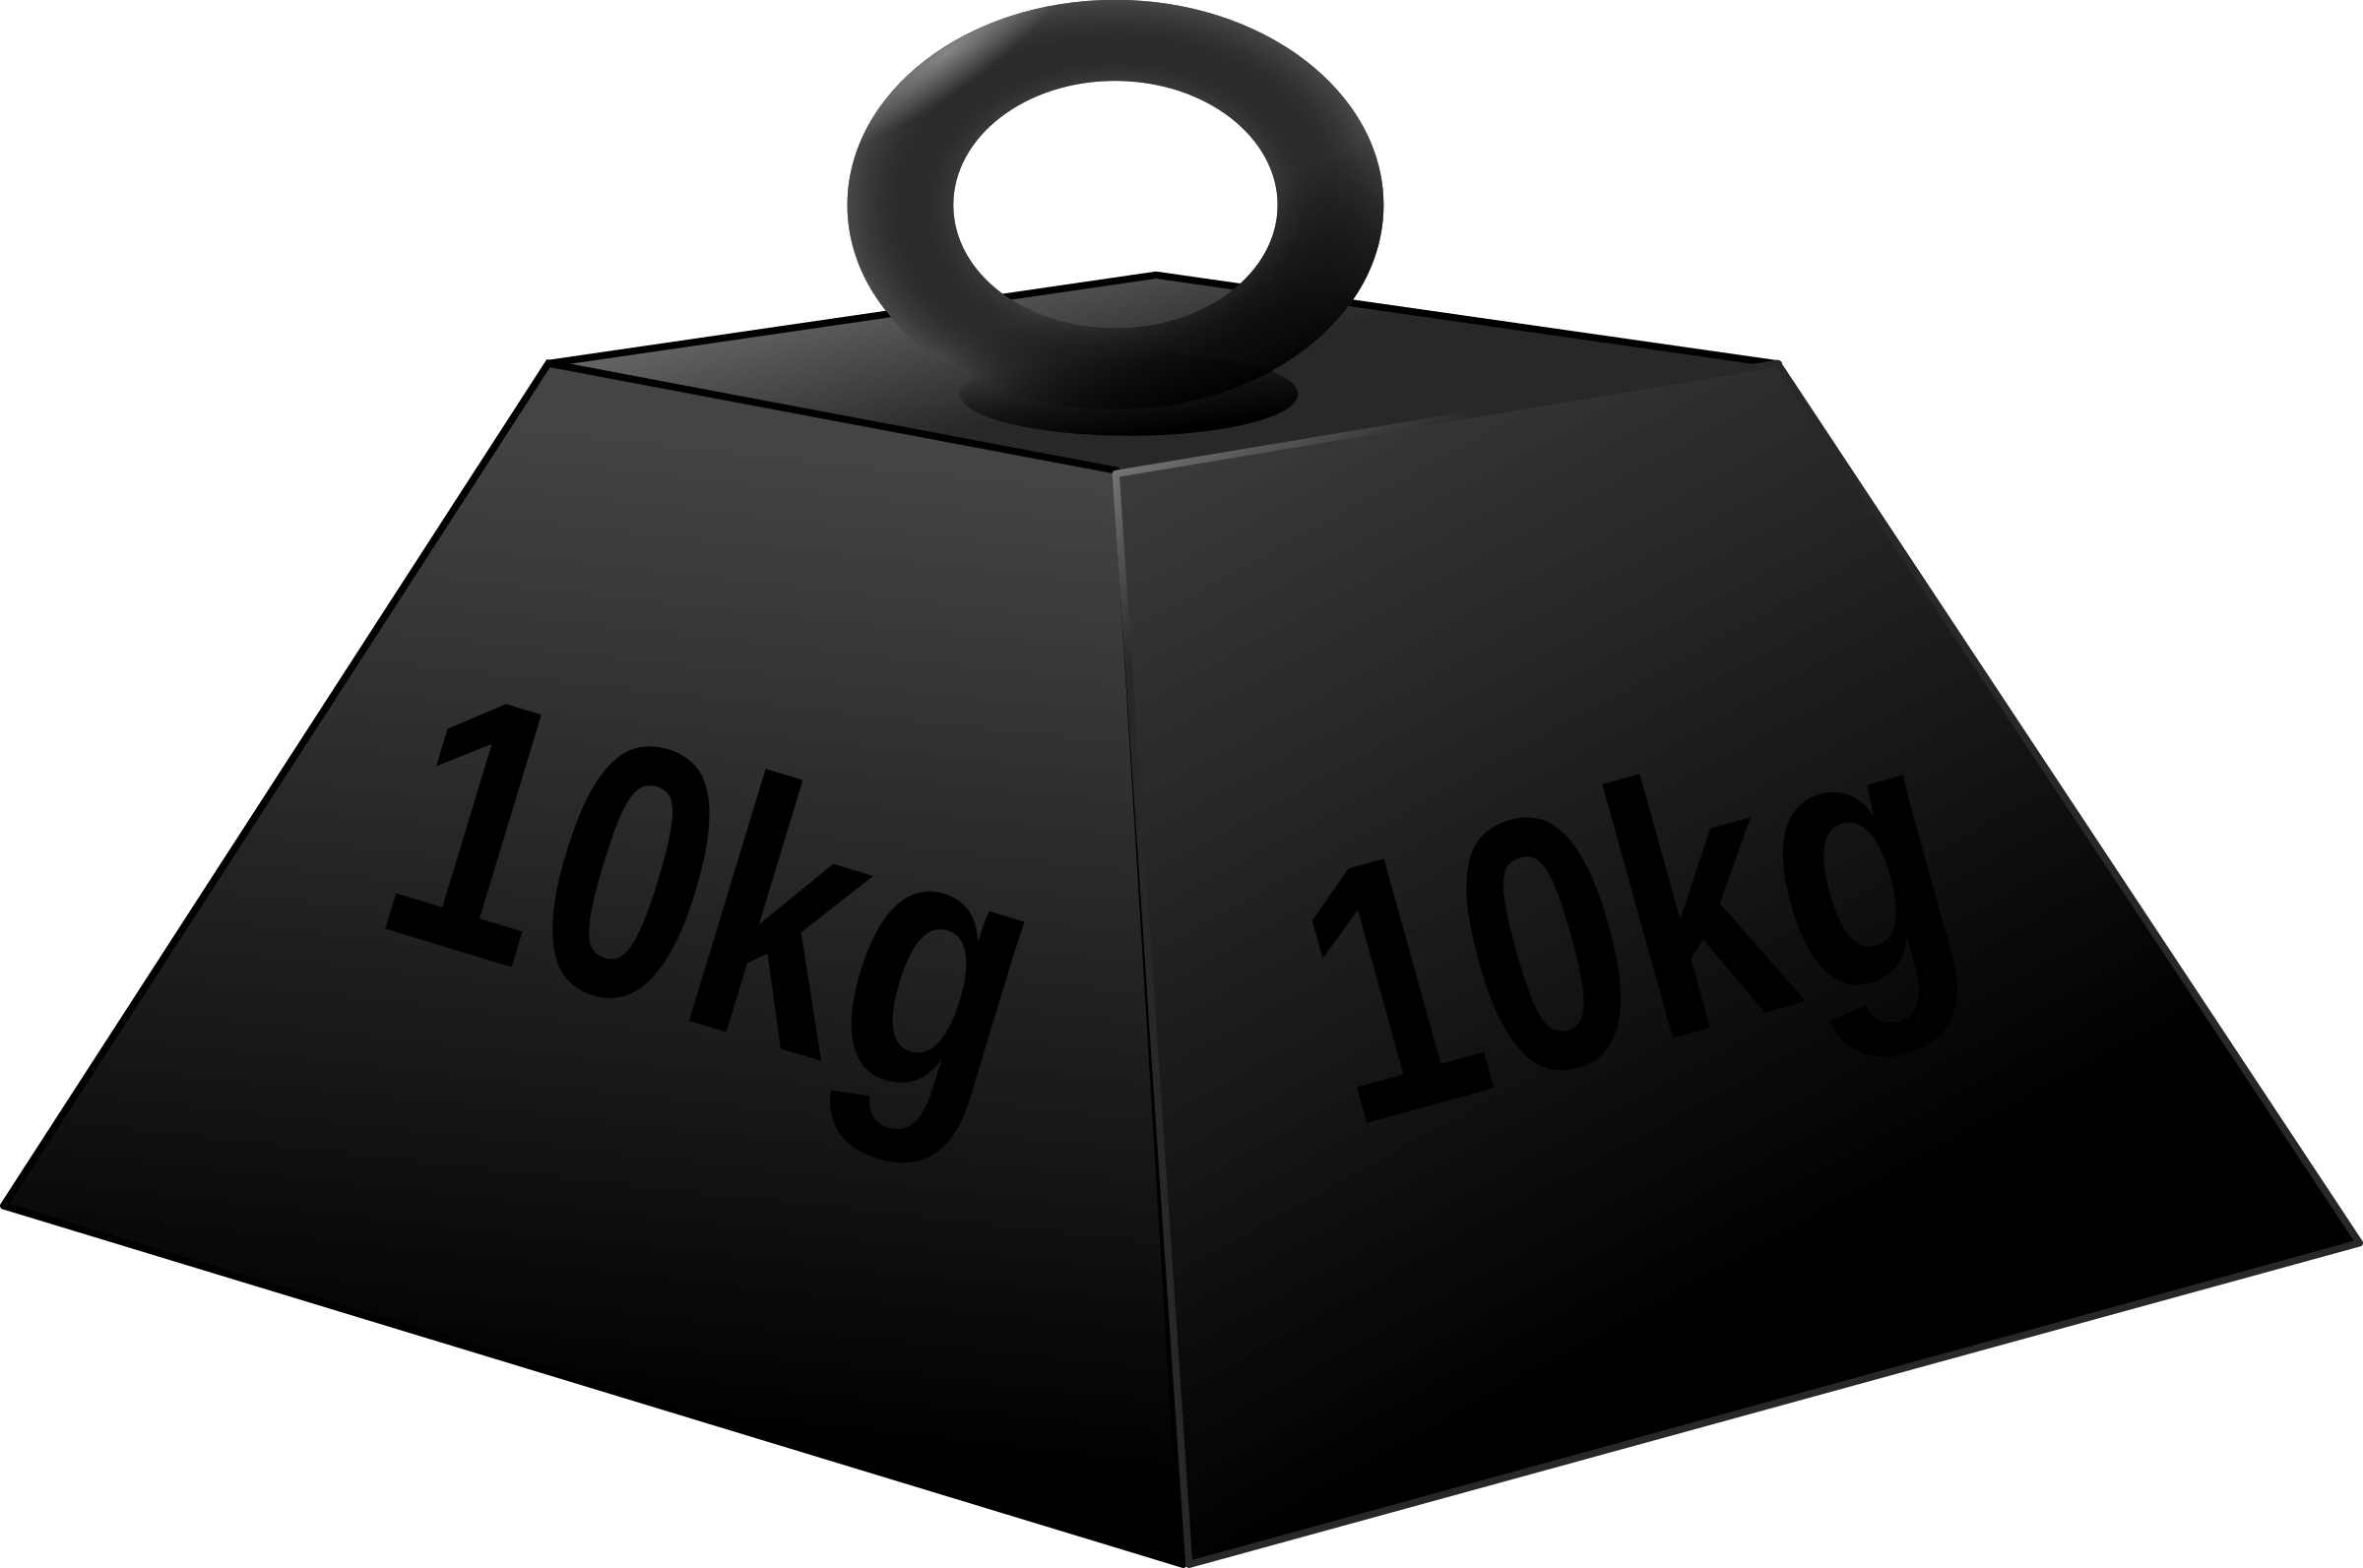 Weight clipart 10 kg. Big image png